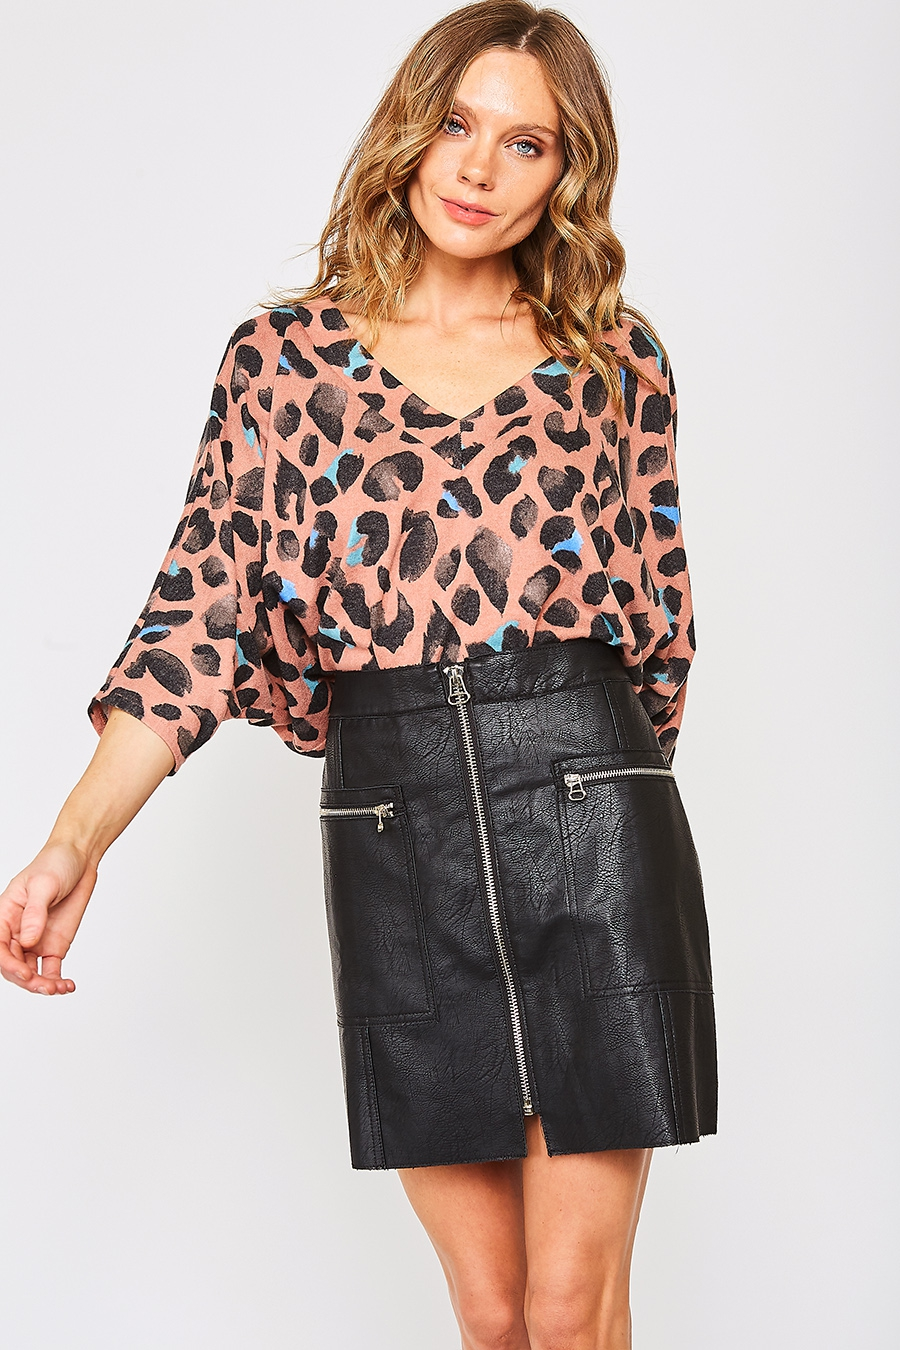 BRUSHED ANIMAL PRINT TOP - orangeshine.com